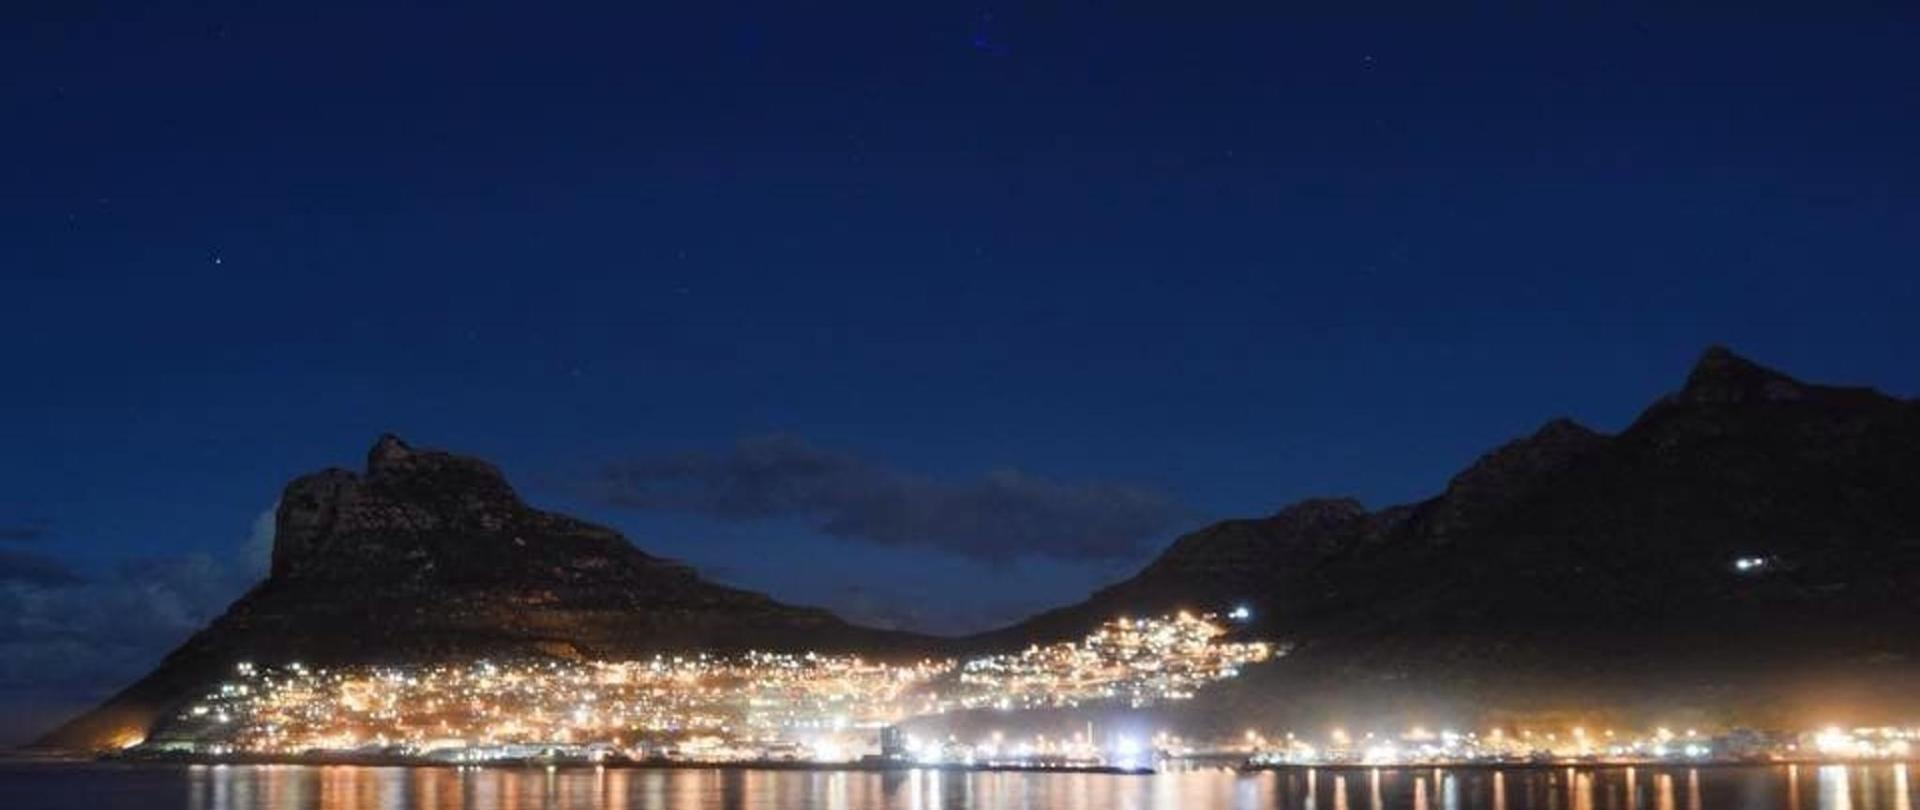 Flora Bay night view